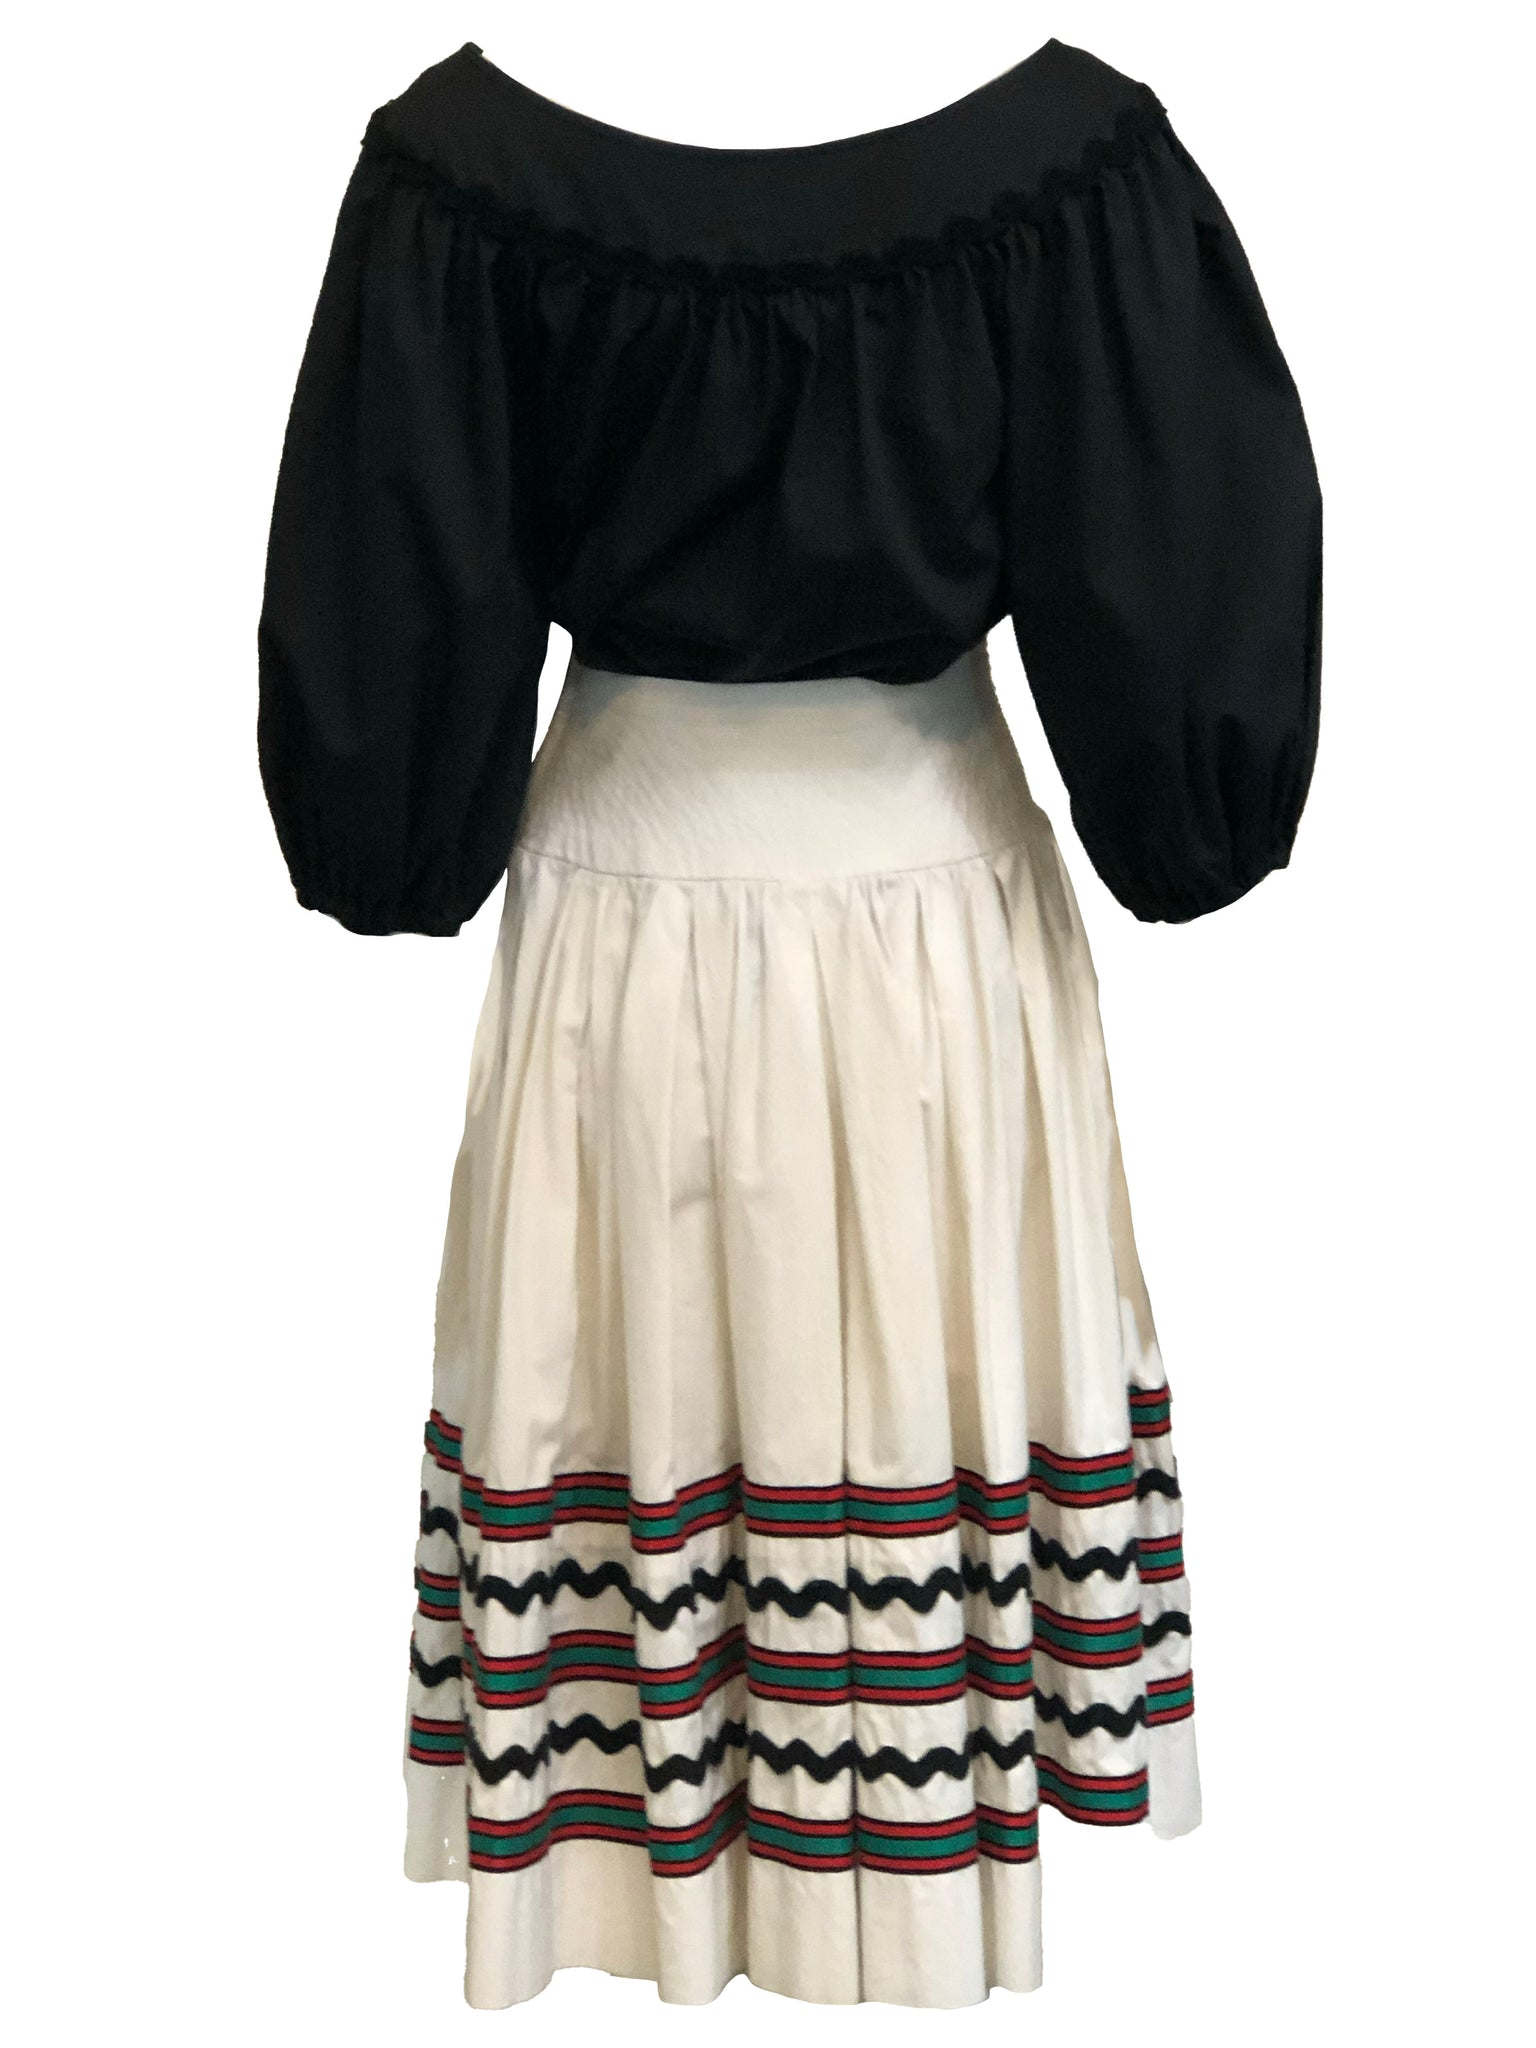 YSL 1970s Peasant Ensemble in Black and White BACK 3 of 6